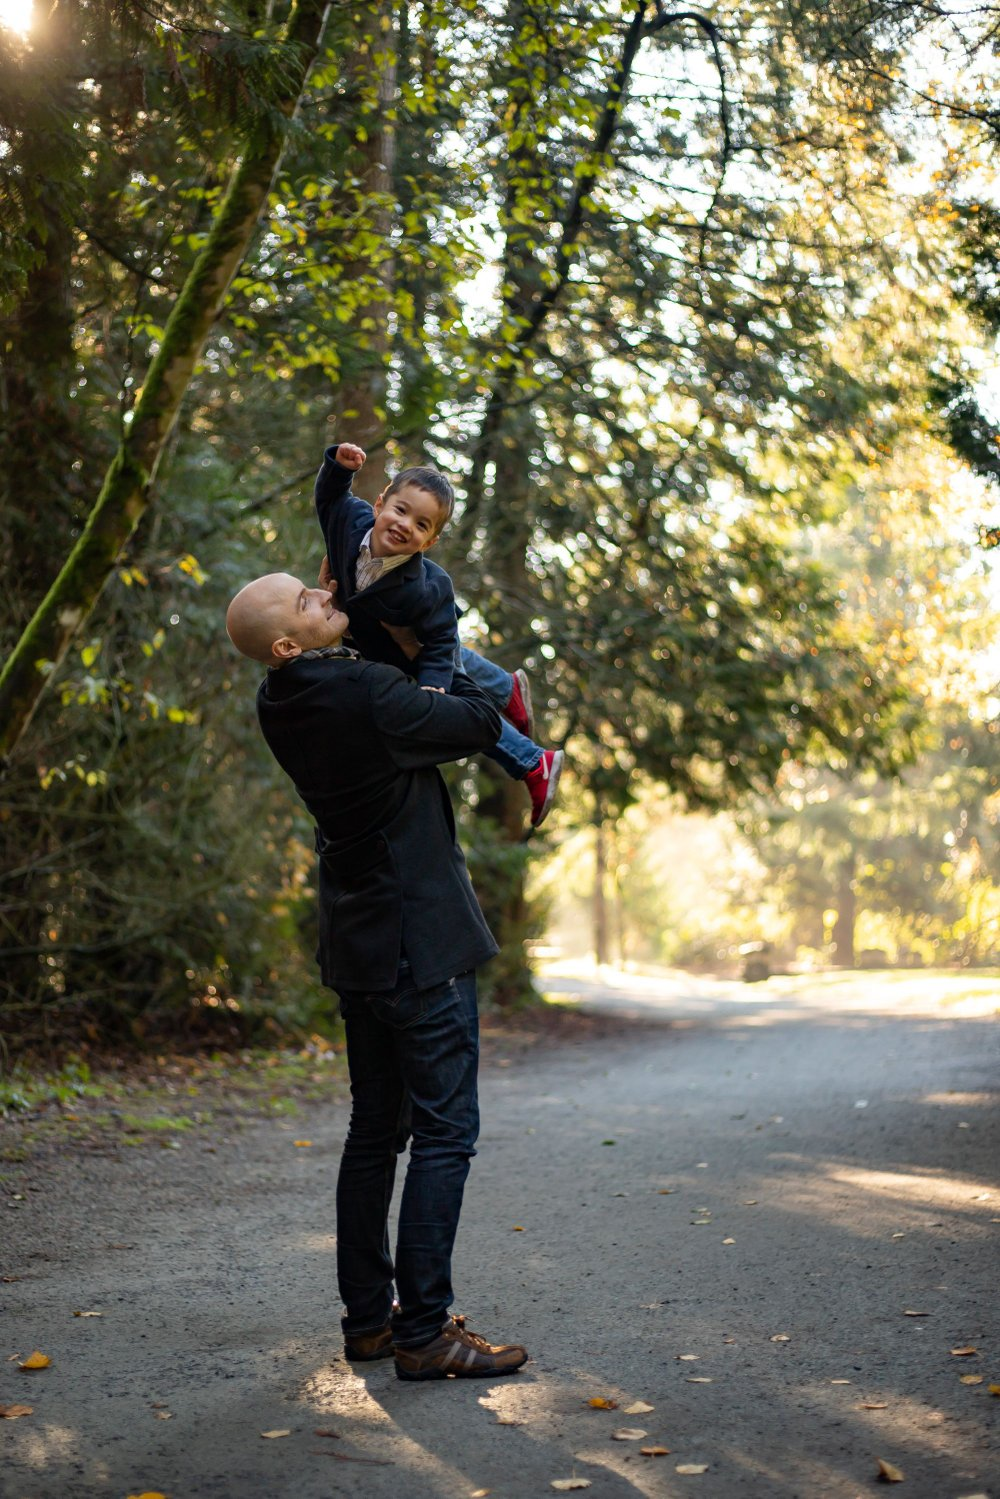 Central Park Family Mini Session Photo by Hannah T. Photography in Family Package, Vancouver, BC, Canada